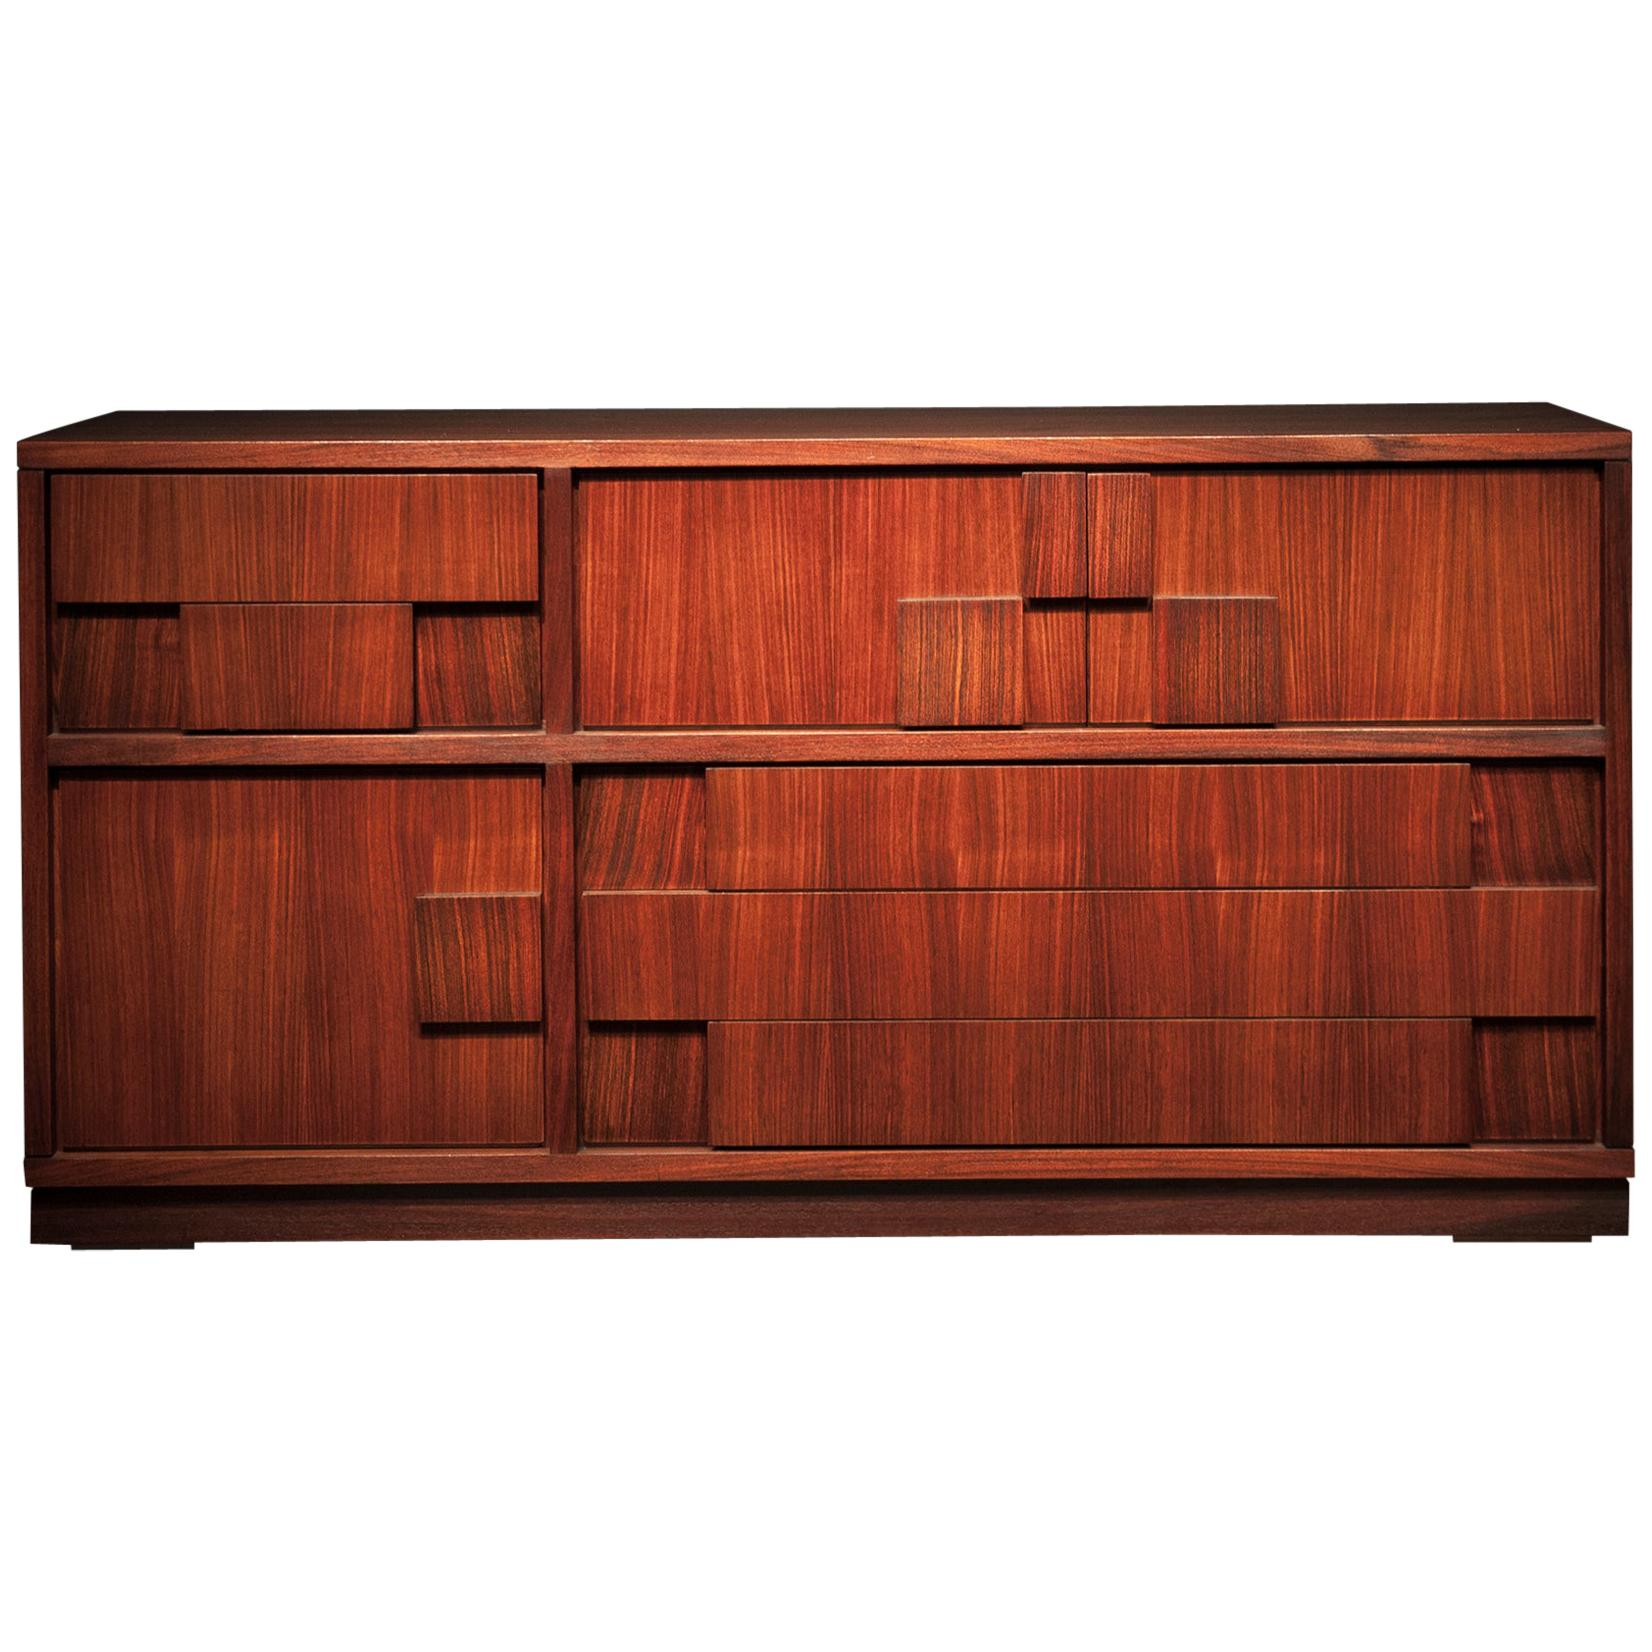 Cabinet by Ico Parisi